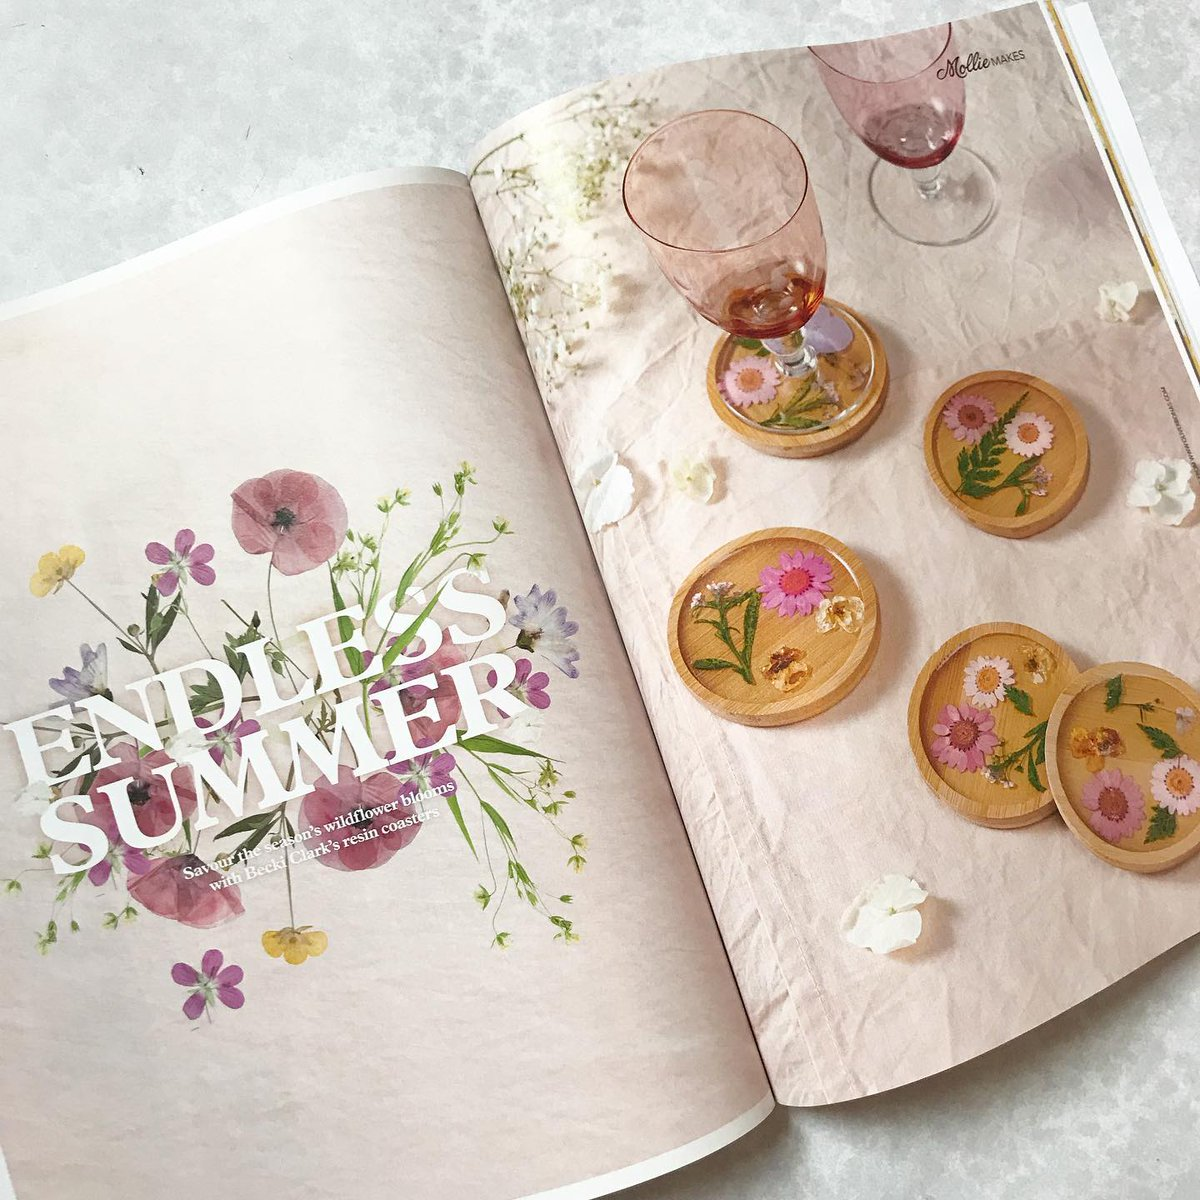 Yay I have a new floral craft project in @molliemakes this month, super simple resin coasters 🌾 Loved working on these and you'll find the full tutorial inside the mag which is out today, there's so many projects in this issue I can't wait to make 🌿